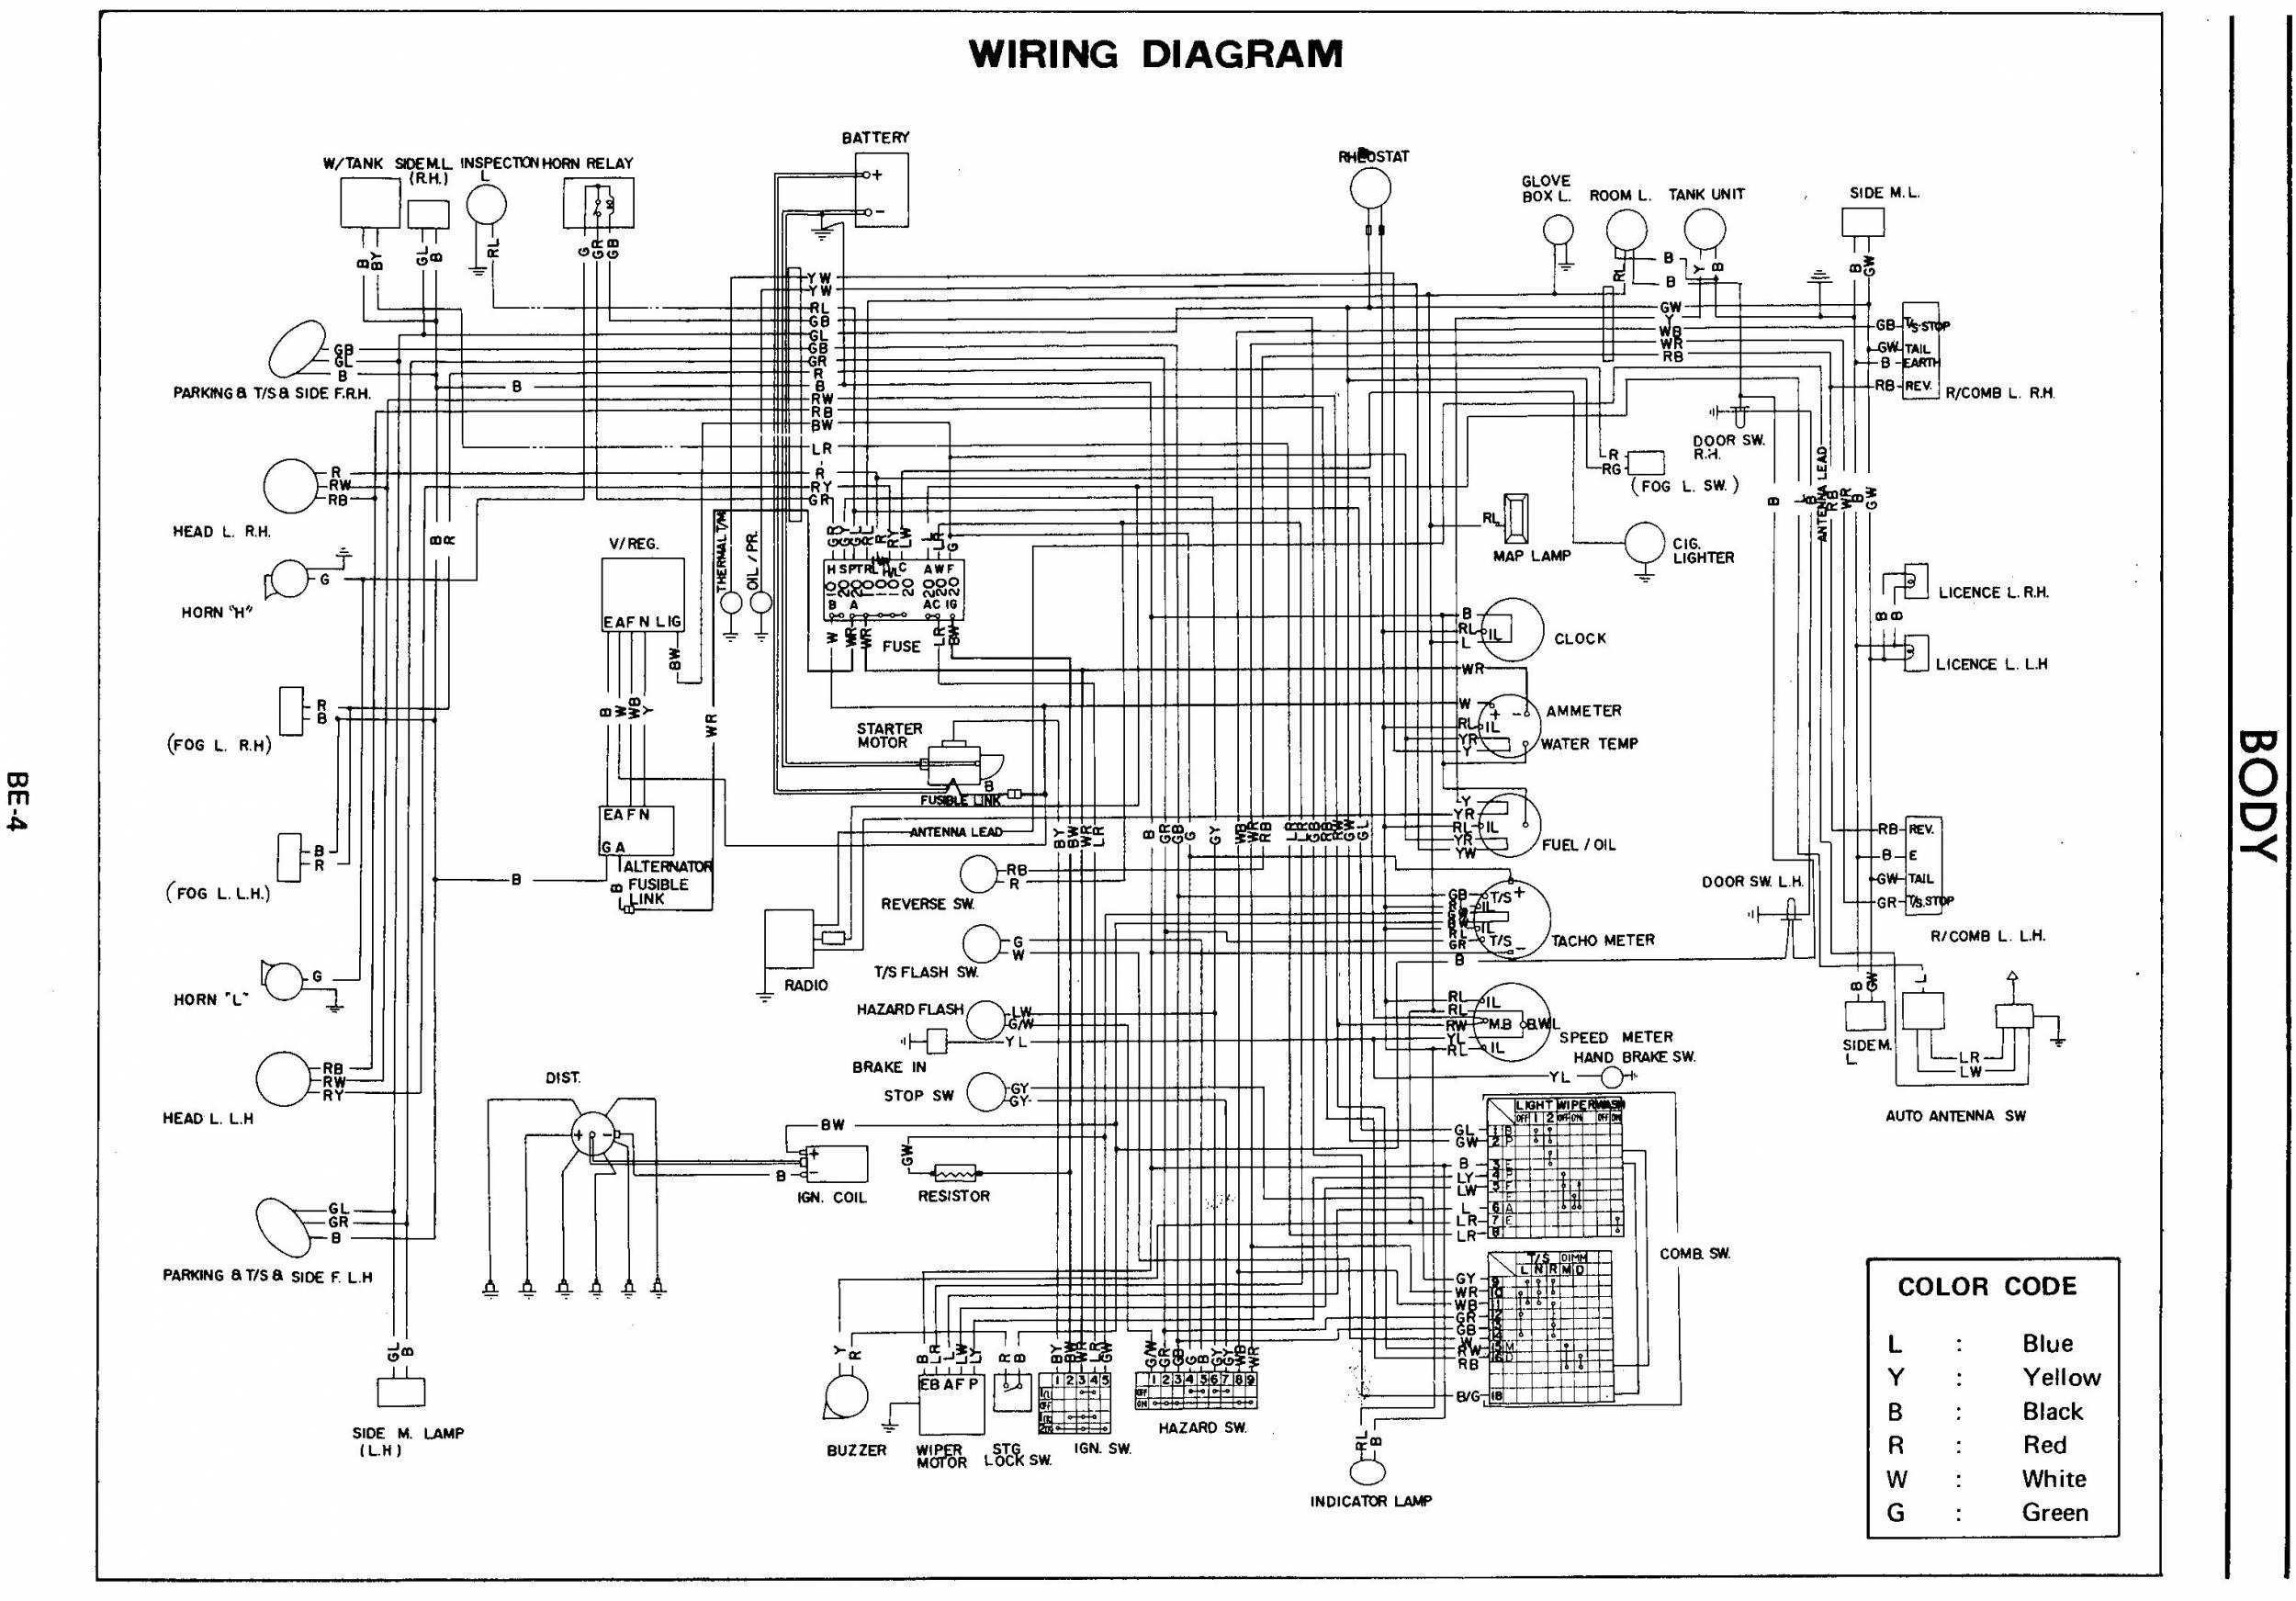 ... wiring diagram for mercedes benz wiring diagram fuse box u2022 rh  friendsoffido co 2003 Mercedes C230